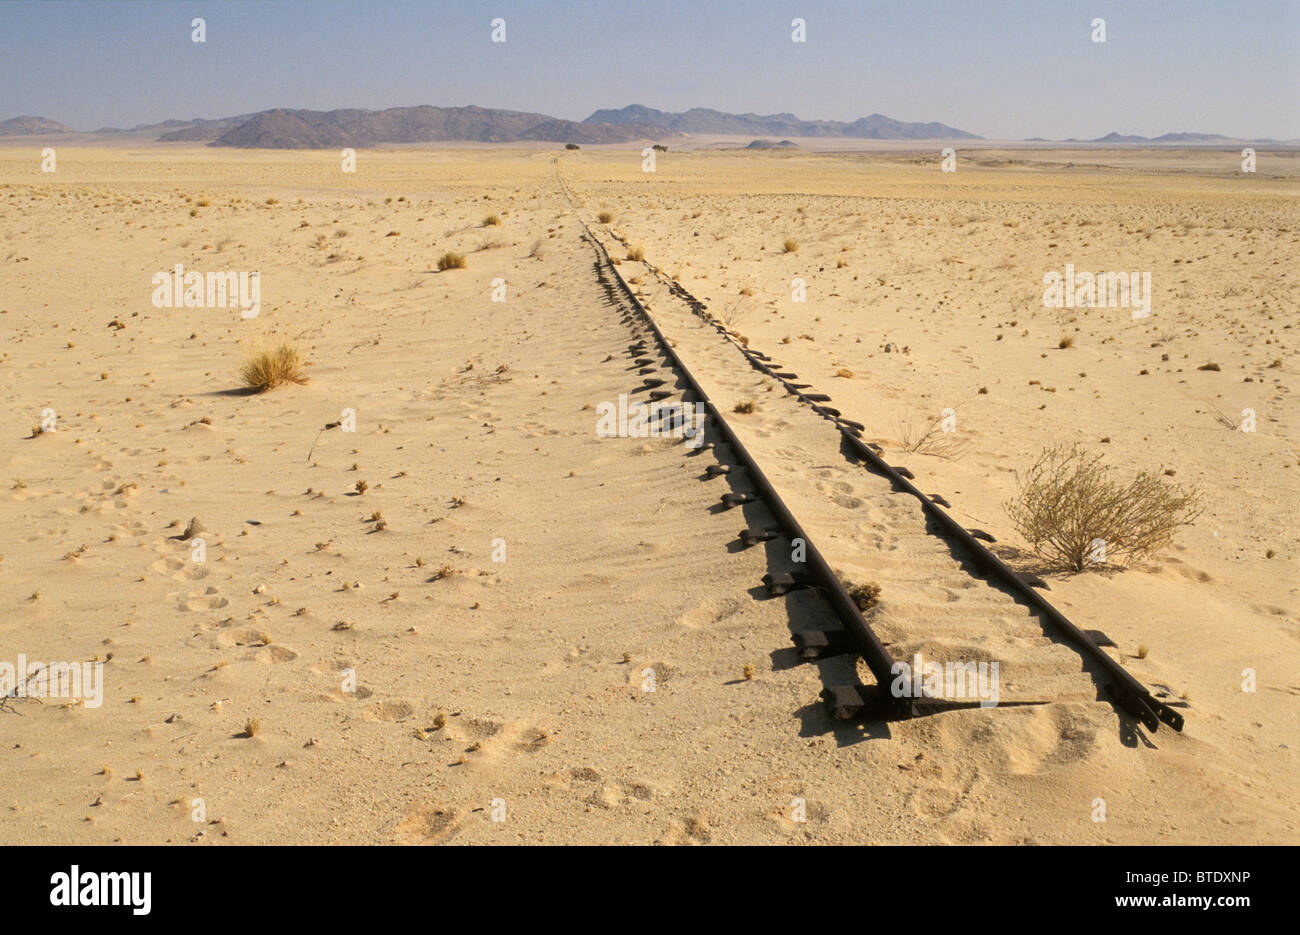 Old railway tracks ending in the middle of nowhere in the desert - Stock Image